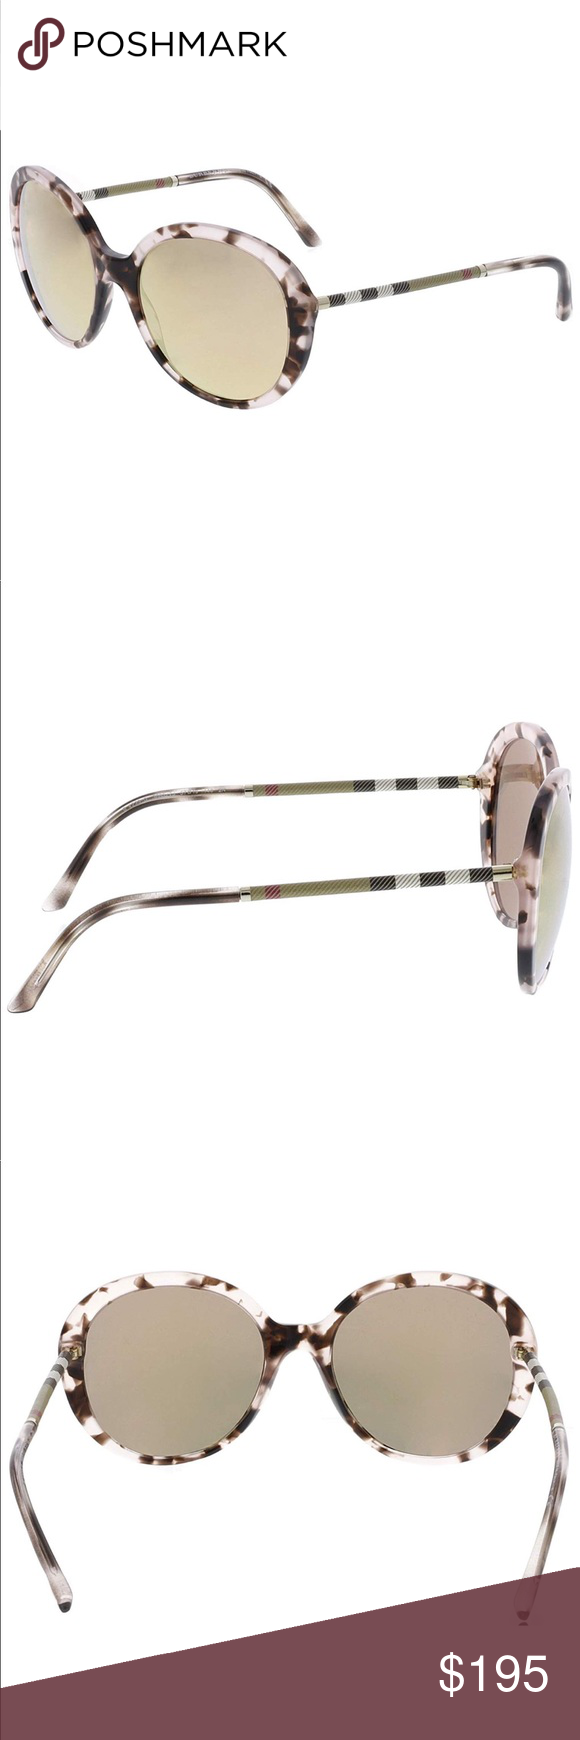 5dc9a537775c Authenticity Guaranteed. Full retail package with all accessories. Burberry  Accessories Sunglasses